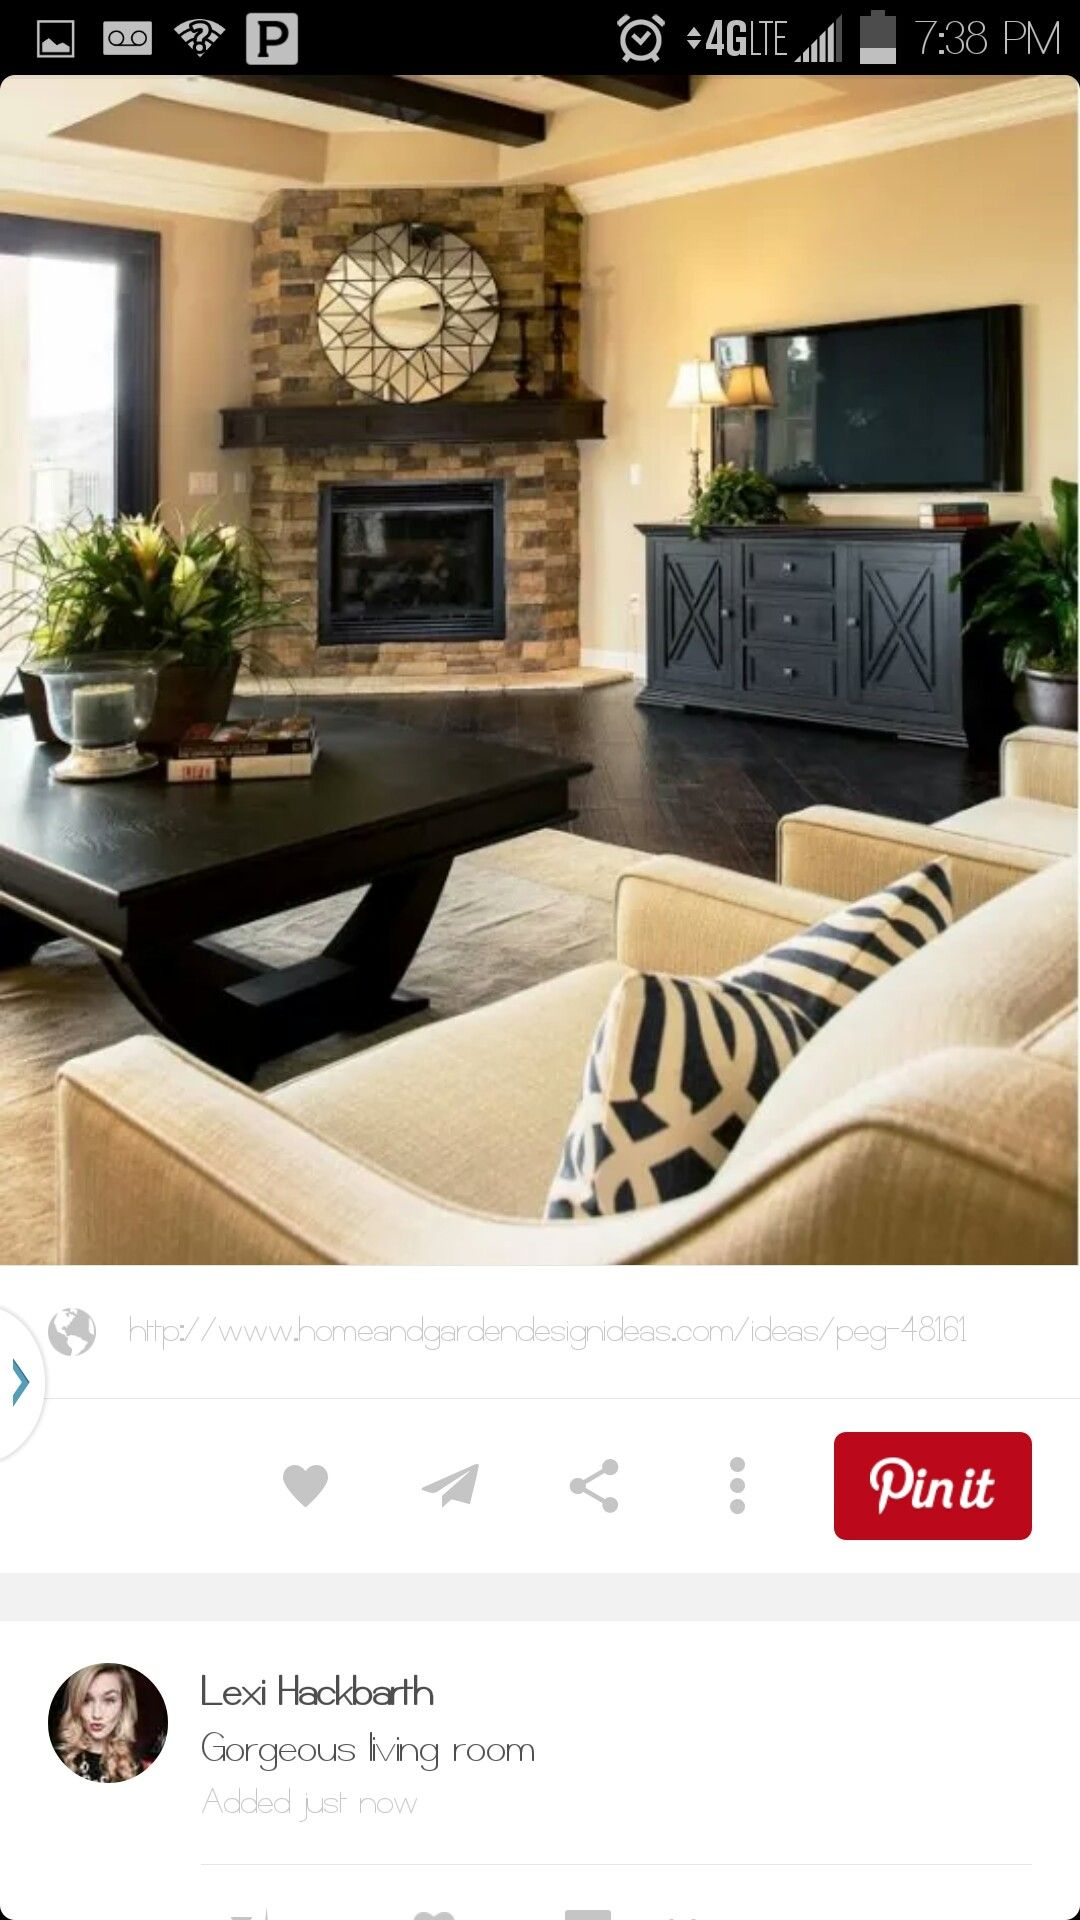 Pin by Andrea Zimmermann on ambientes Pinterest Living rooms